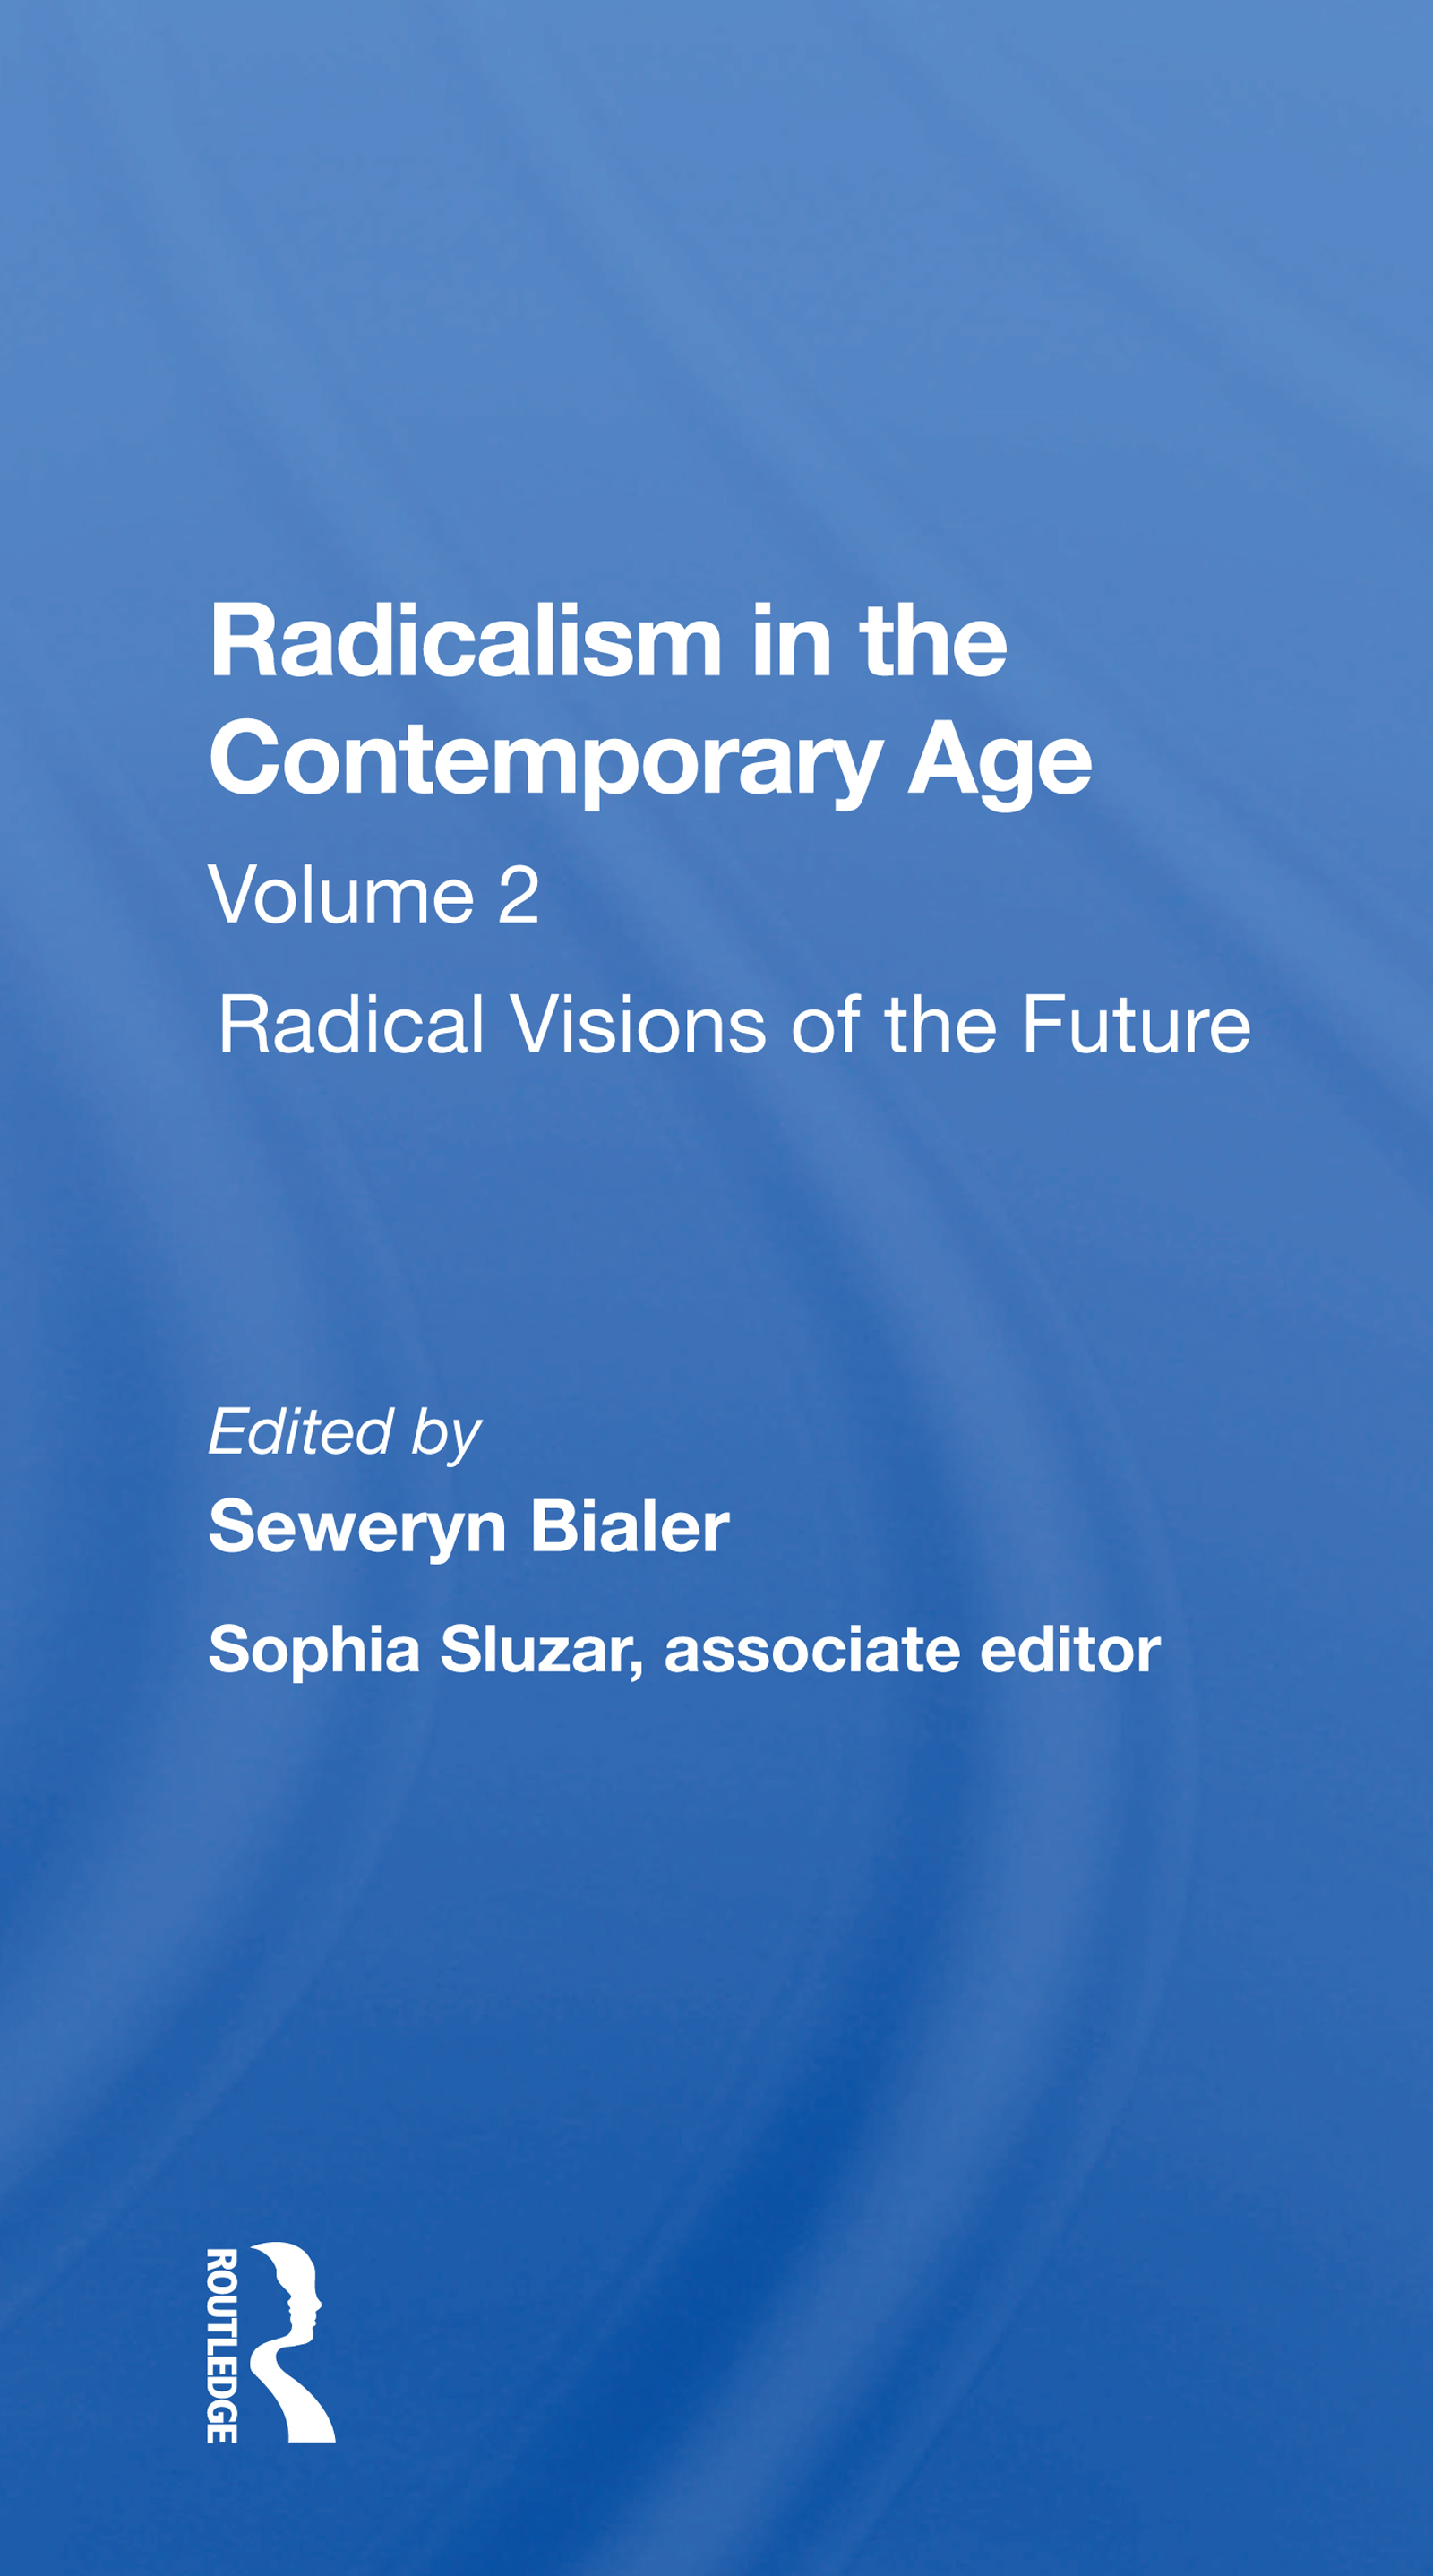 Radicalism In The Contemporary Age, Volume 2